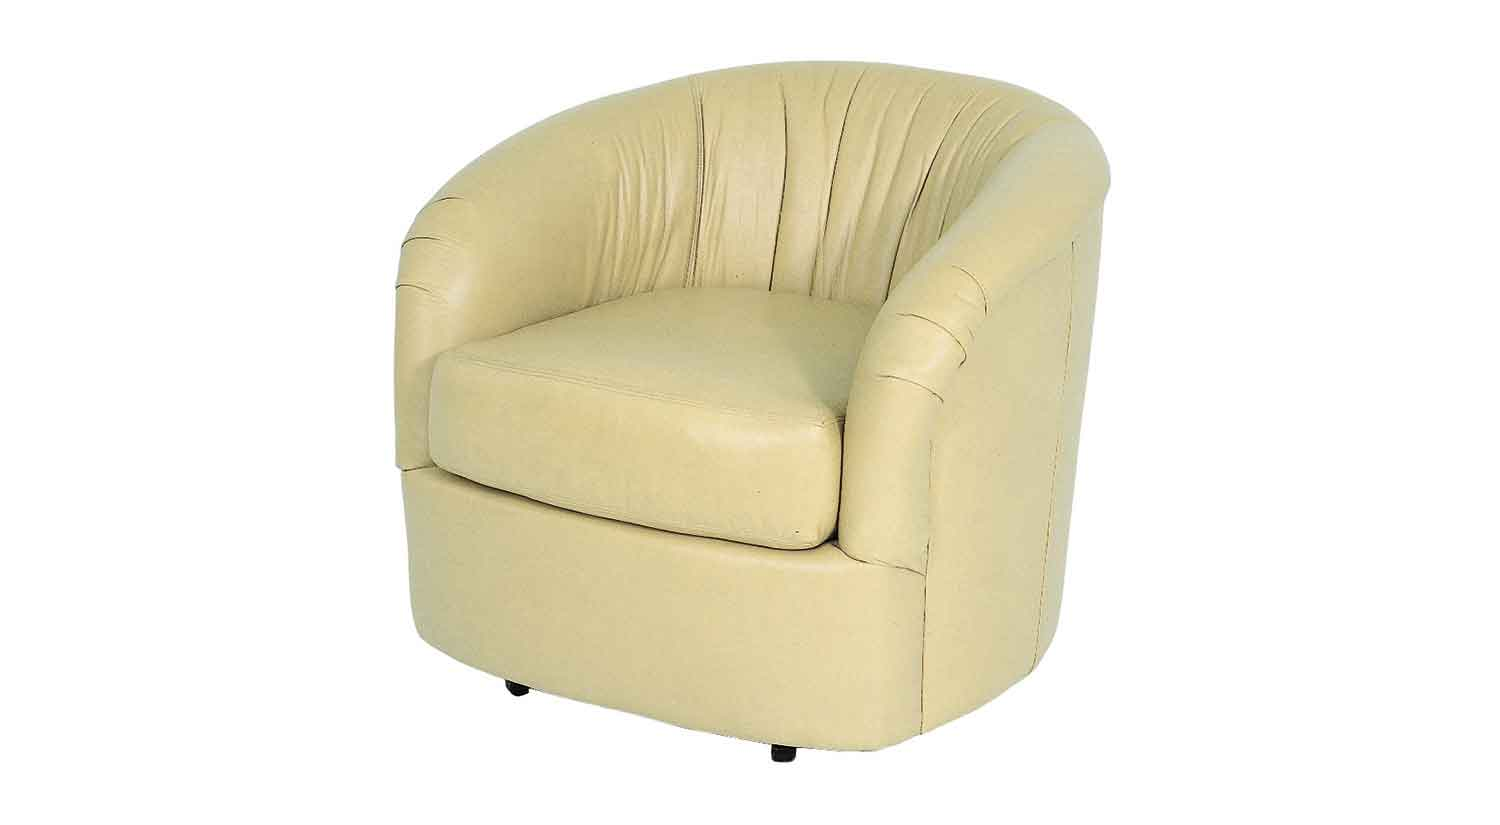 Swivel chairs for small spaces